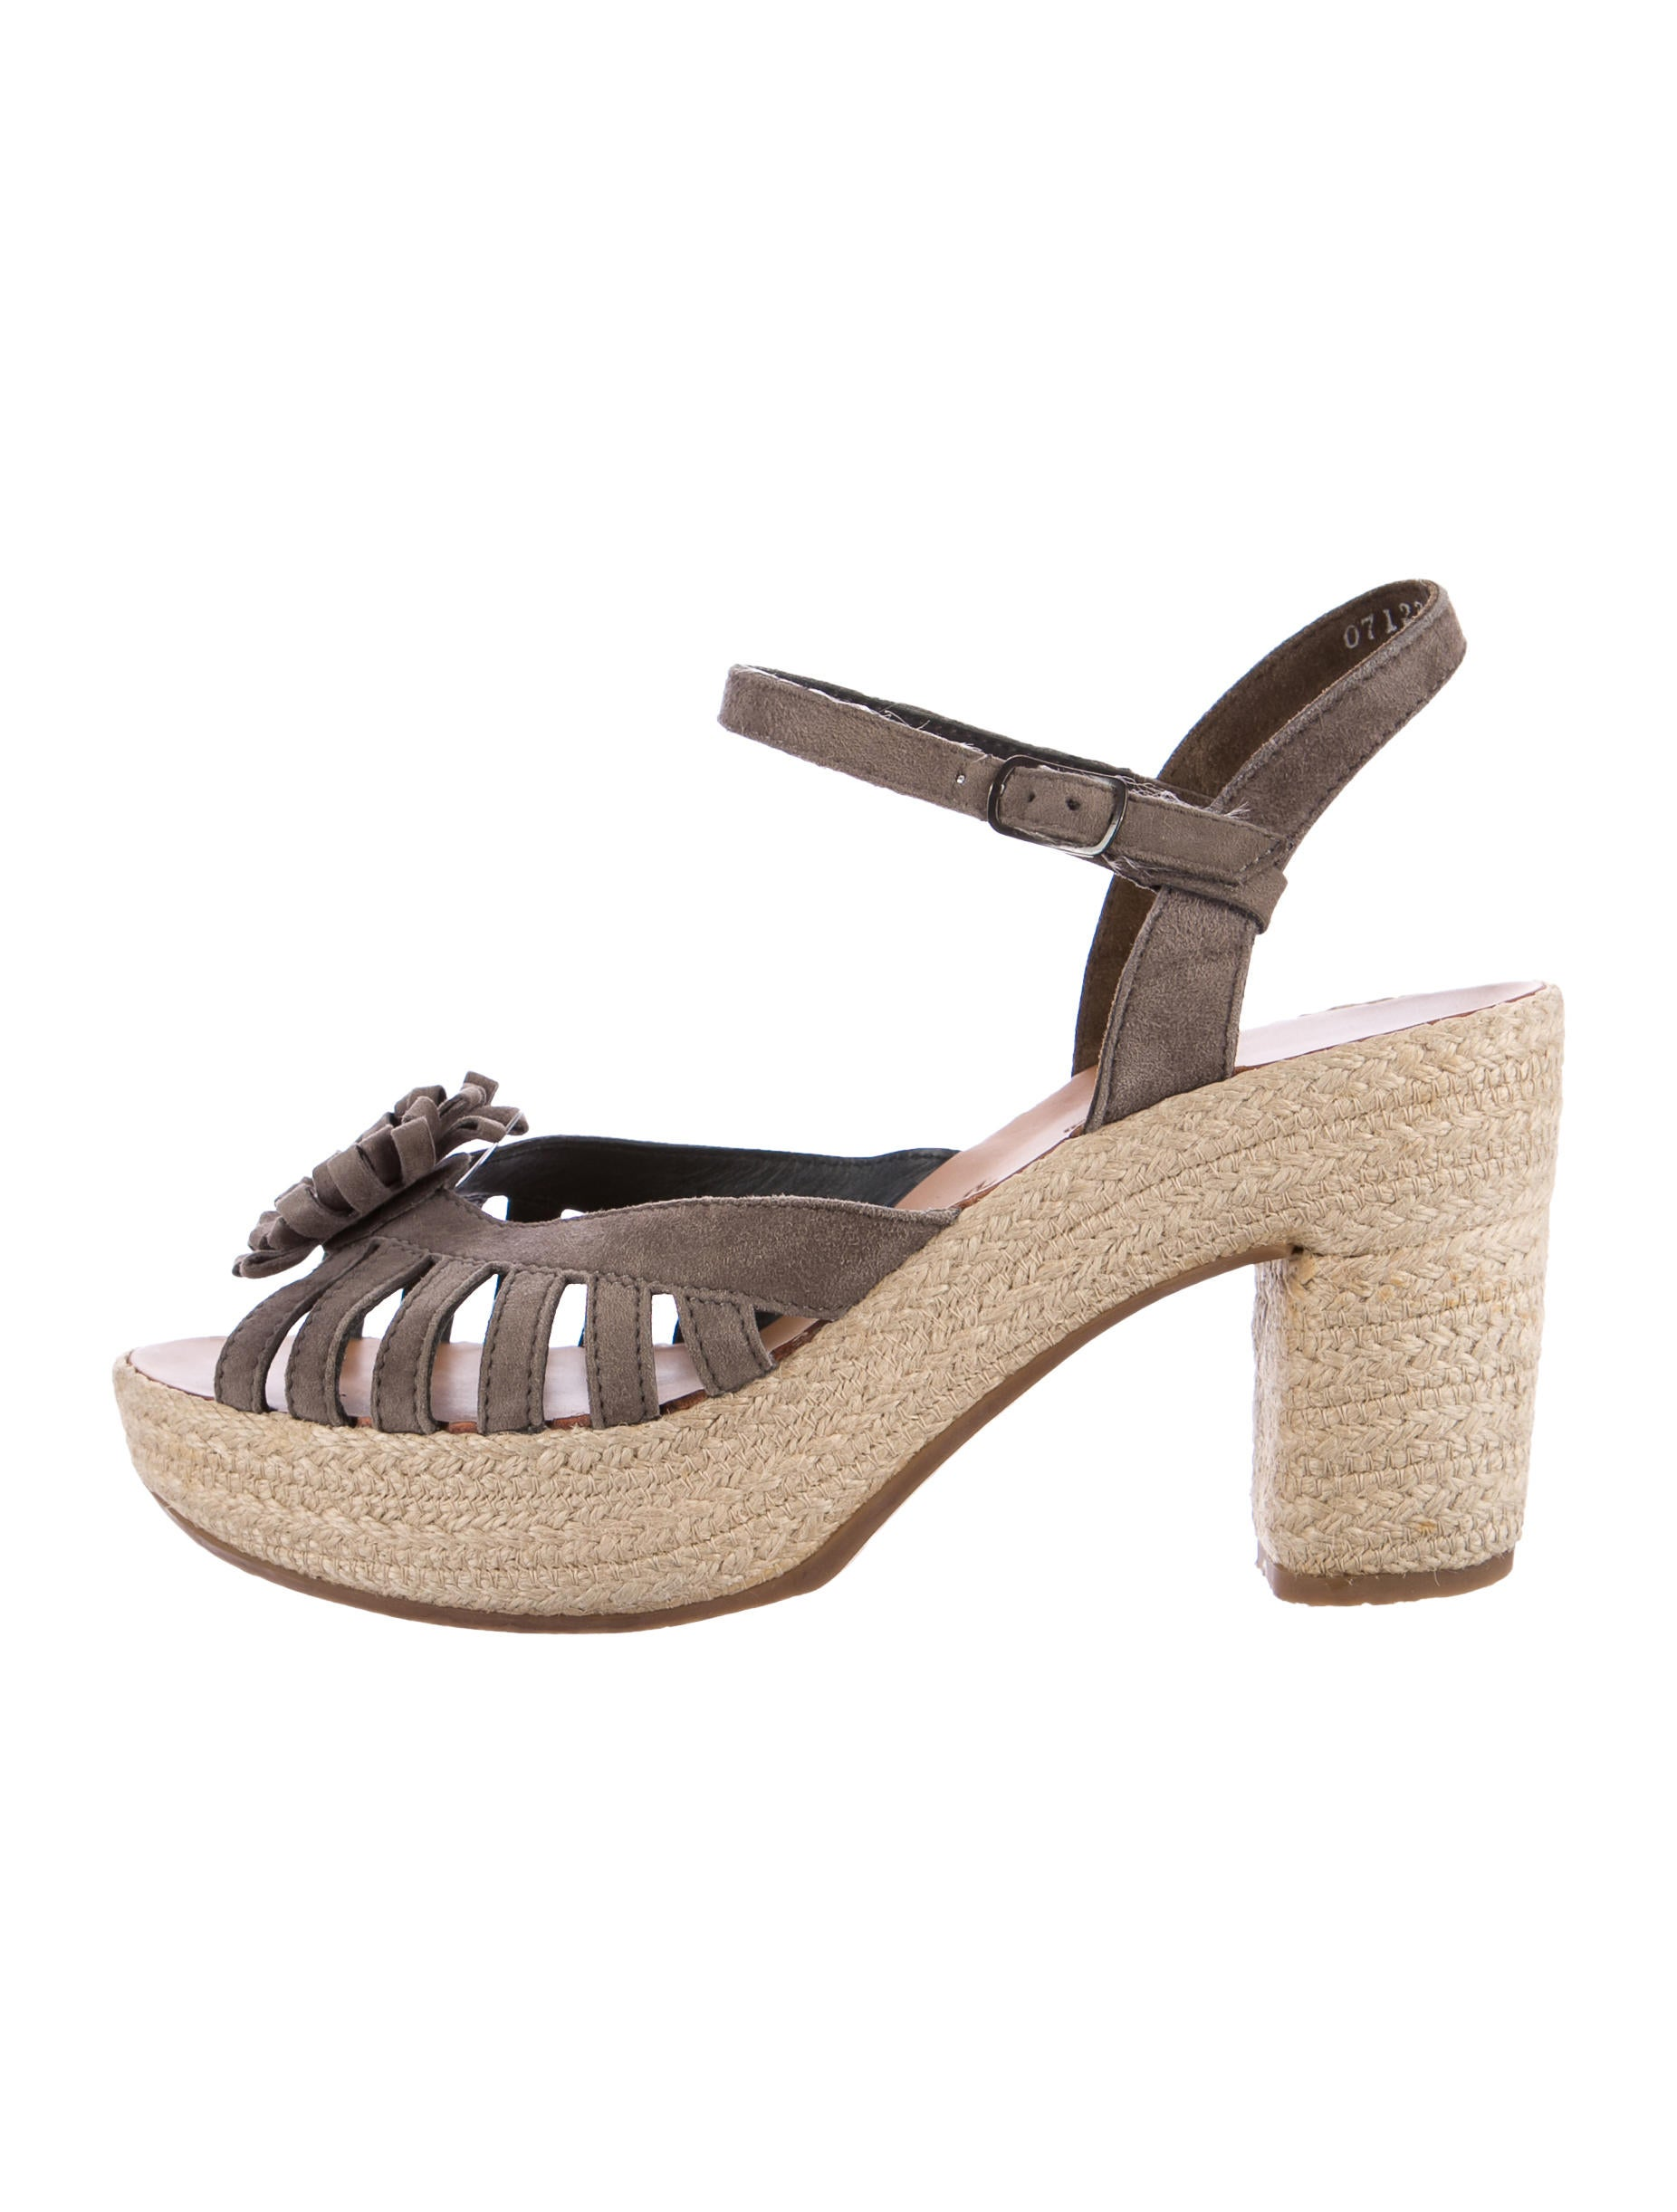 Eileen Fisher perforated nubuck leather espadrille sandal.2